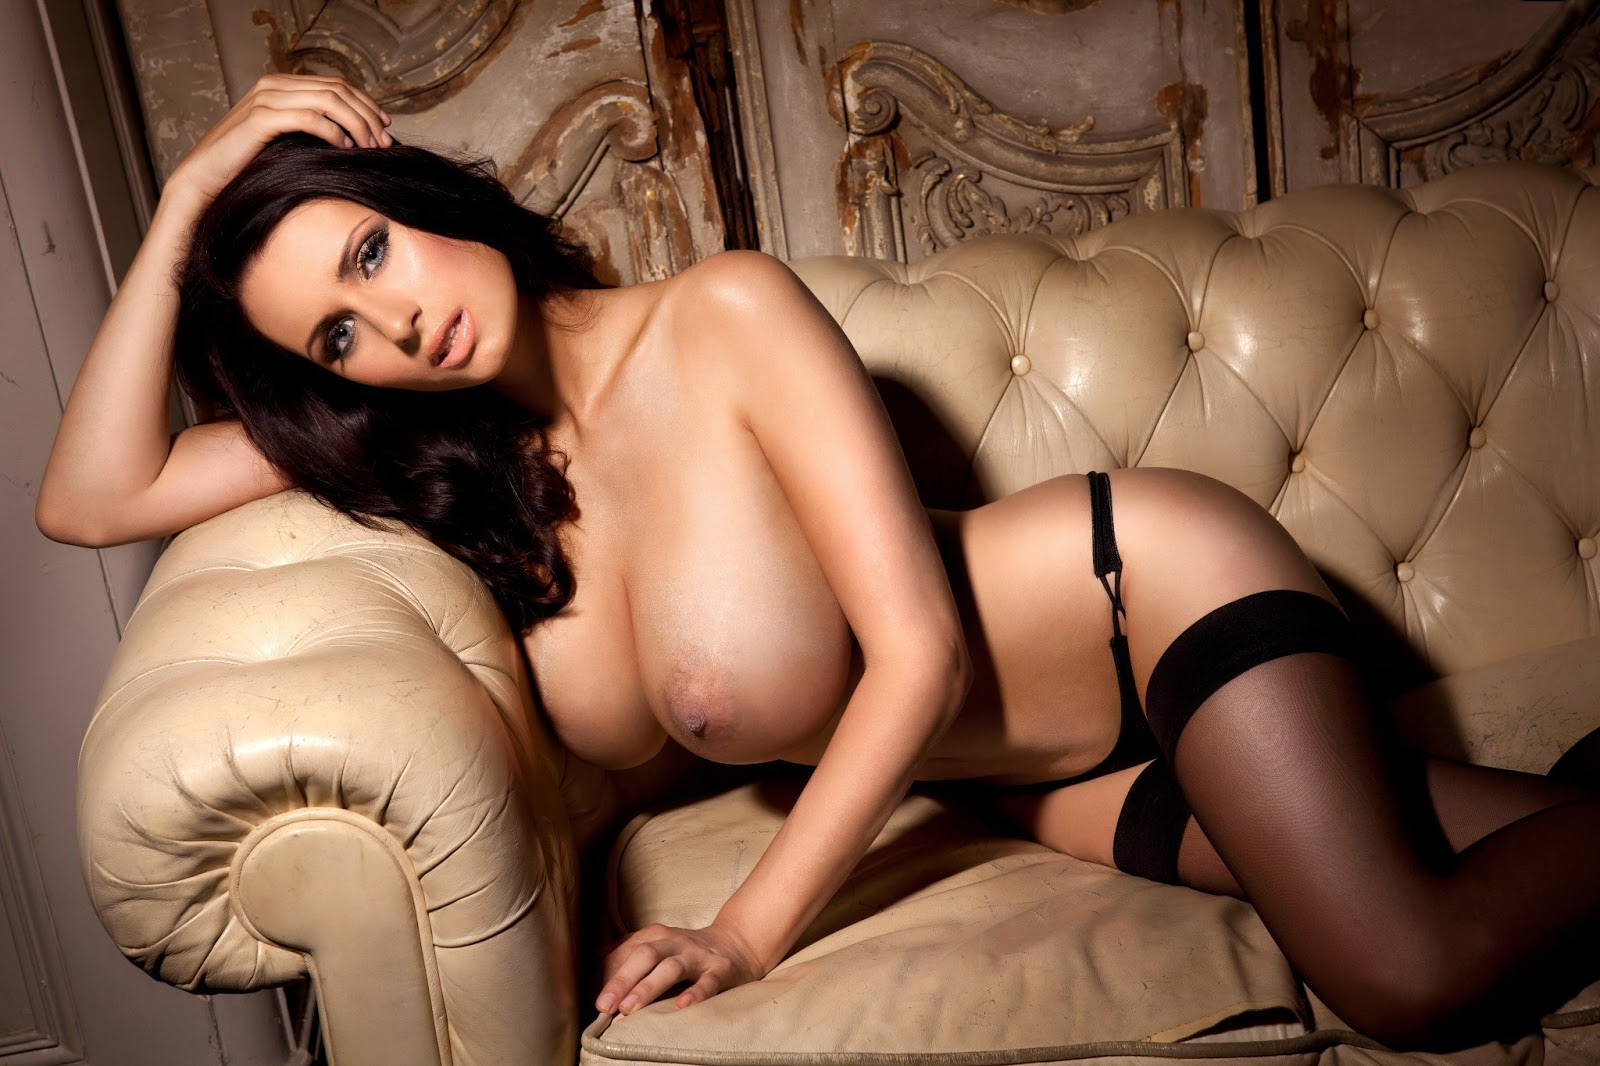 The Phenomenal Breasts Of Sammy Braddy | pasjeleto